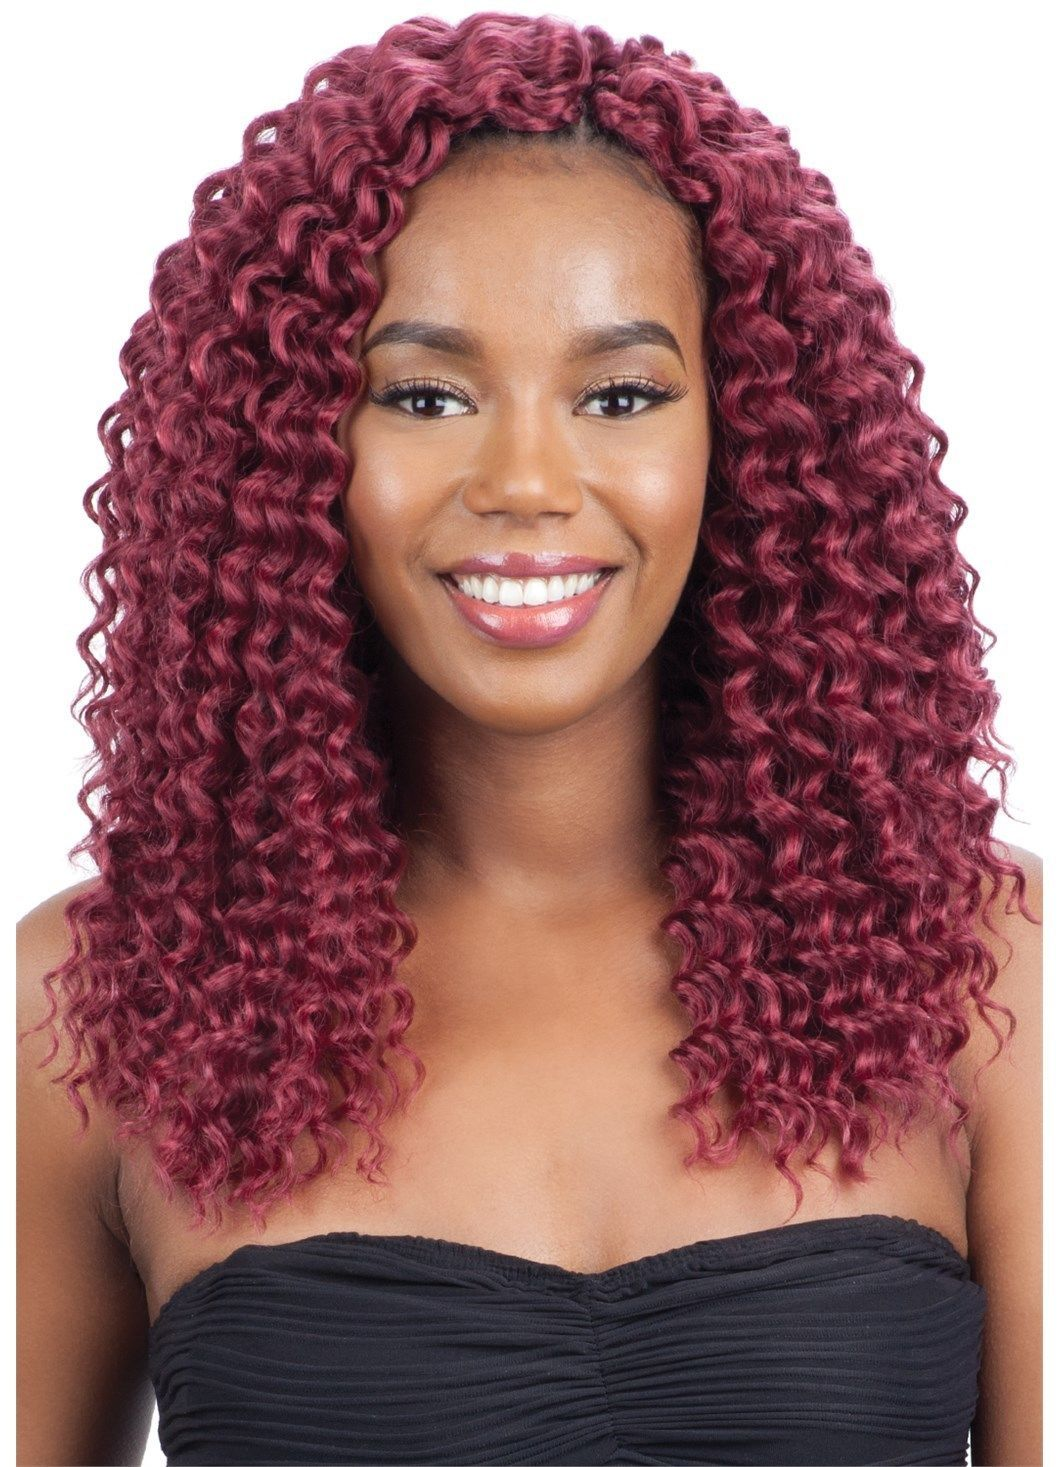 Bahama curl braid